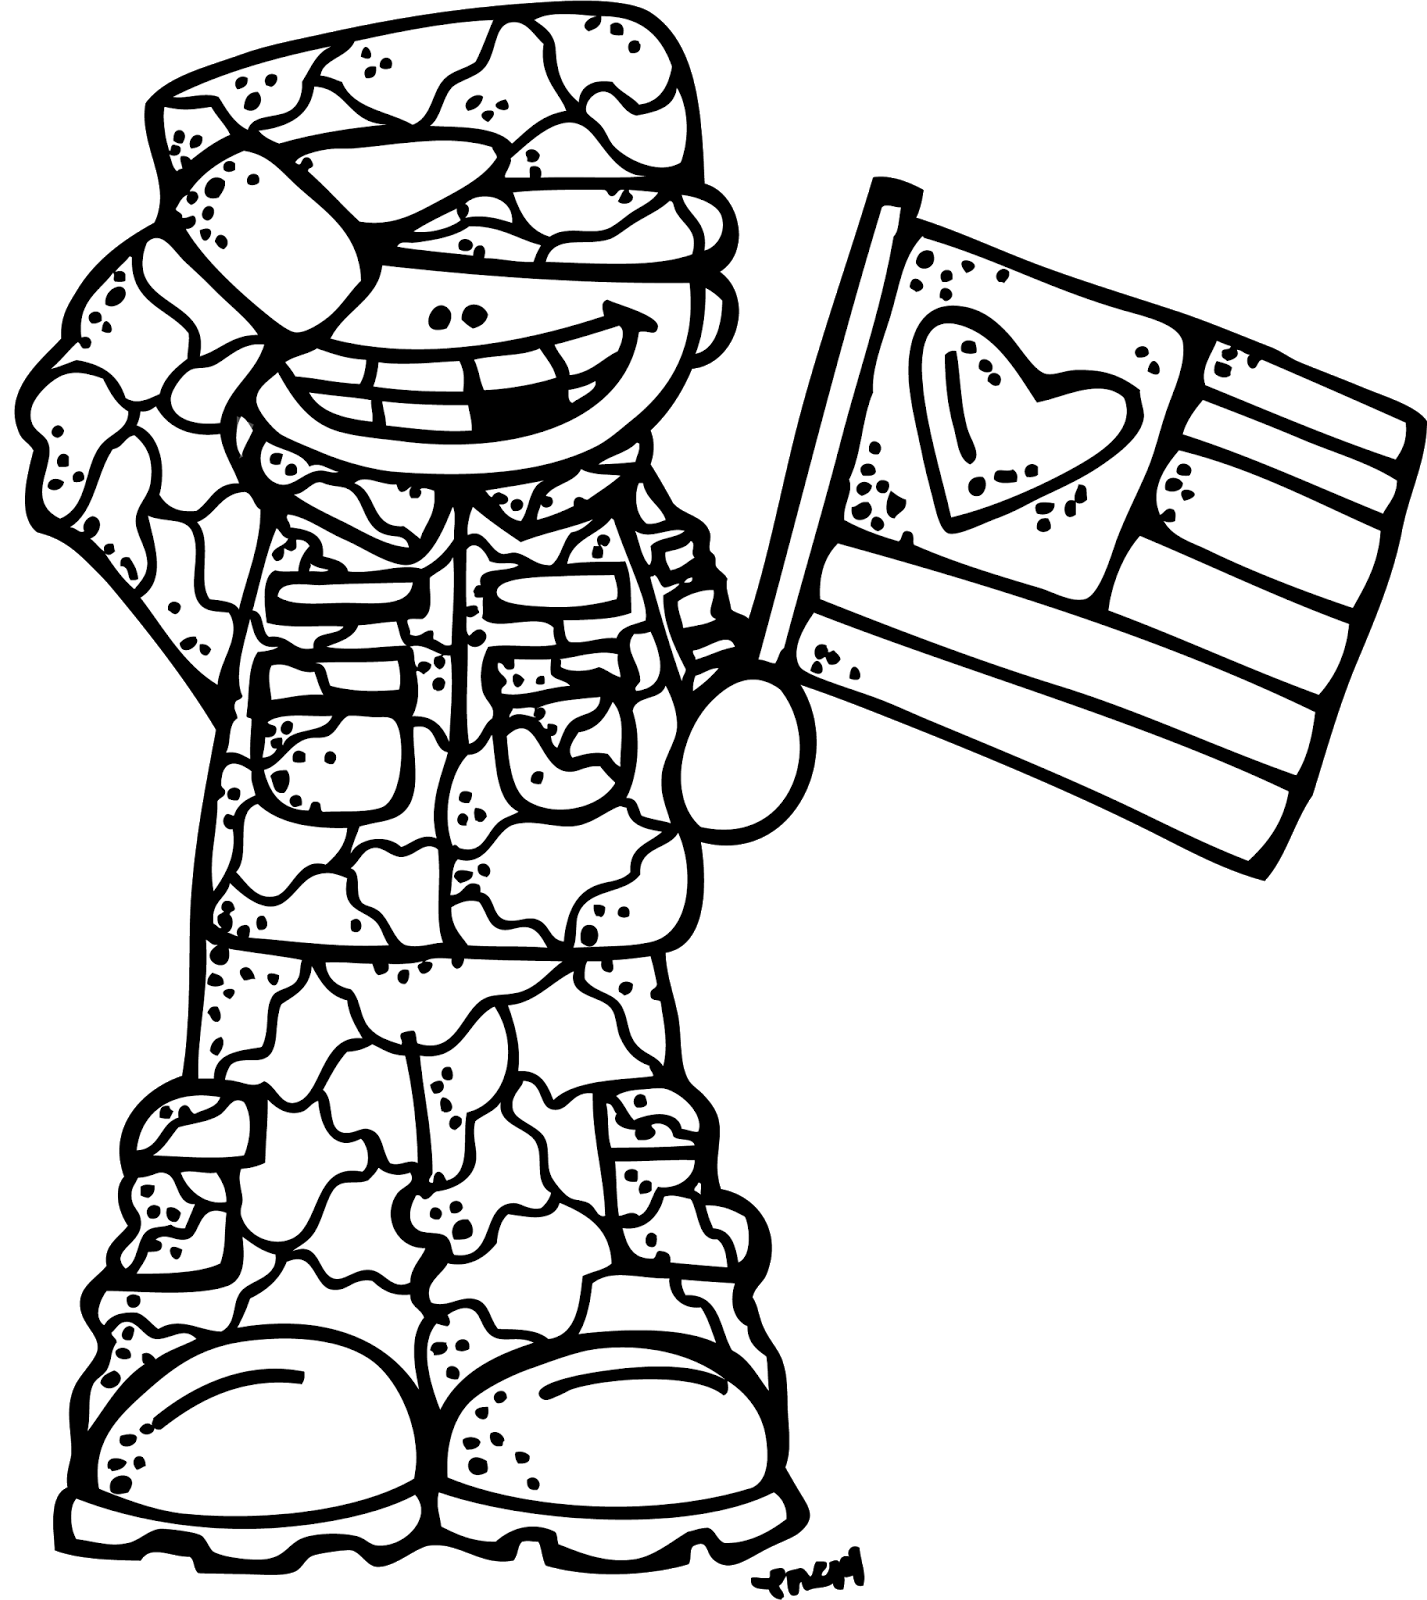 Free Military Cliparts Black, Download Free Clip Art, Free.